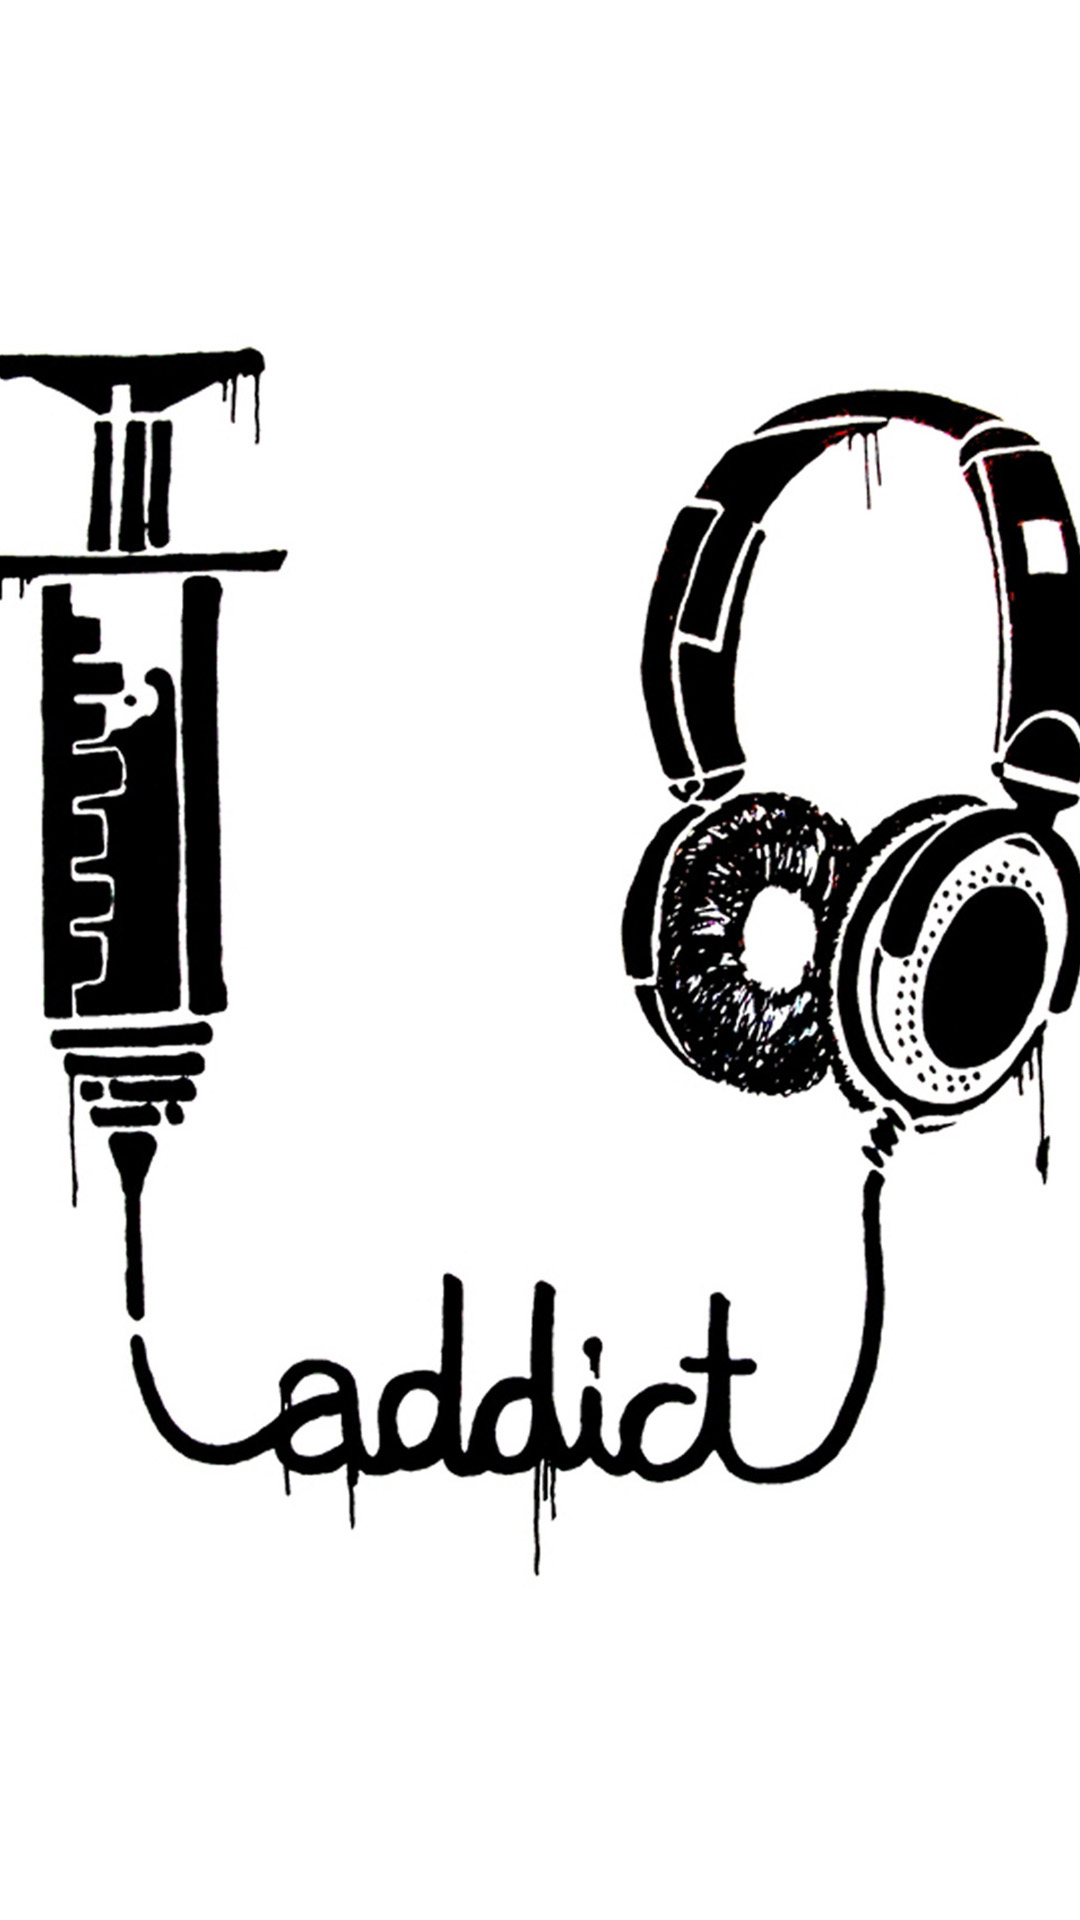 Music Related Wallpapers Group 86